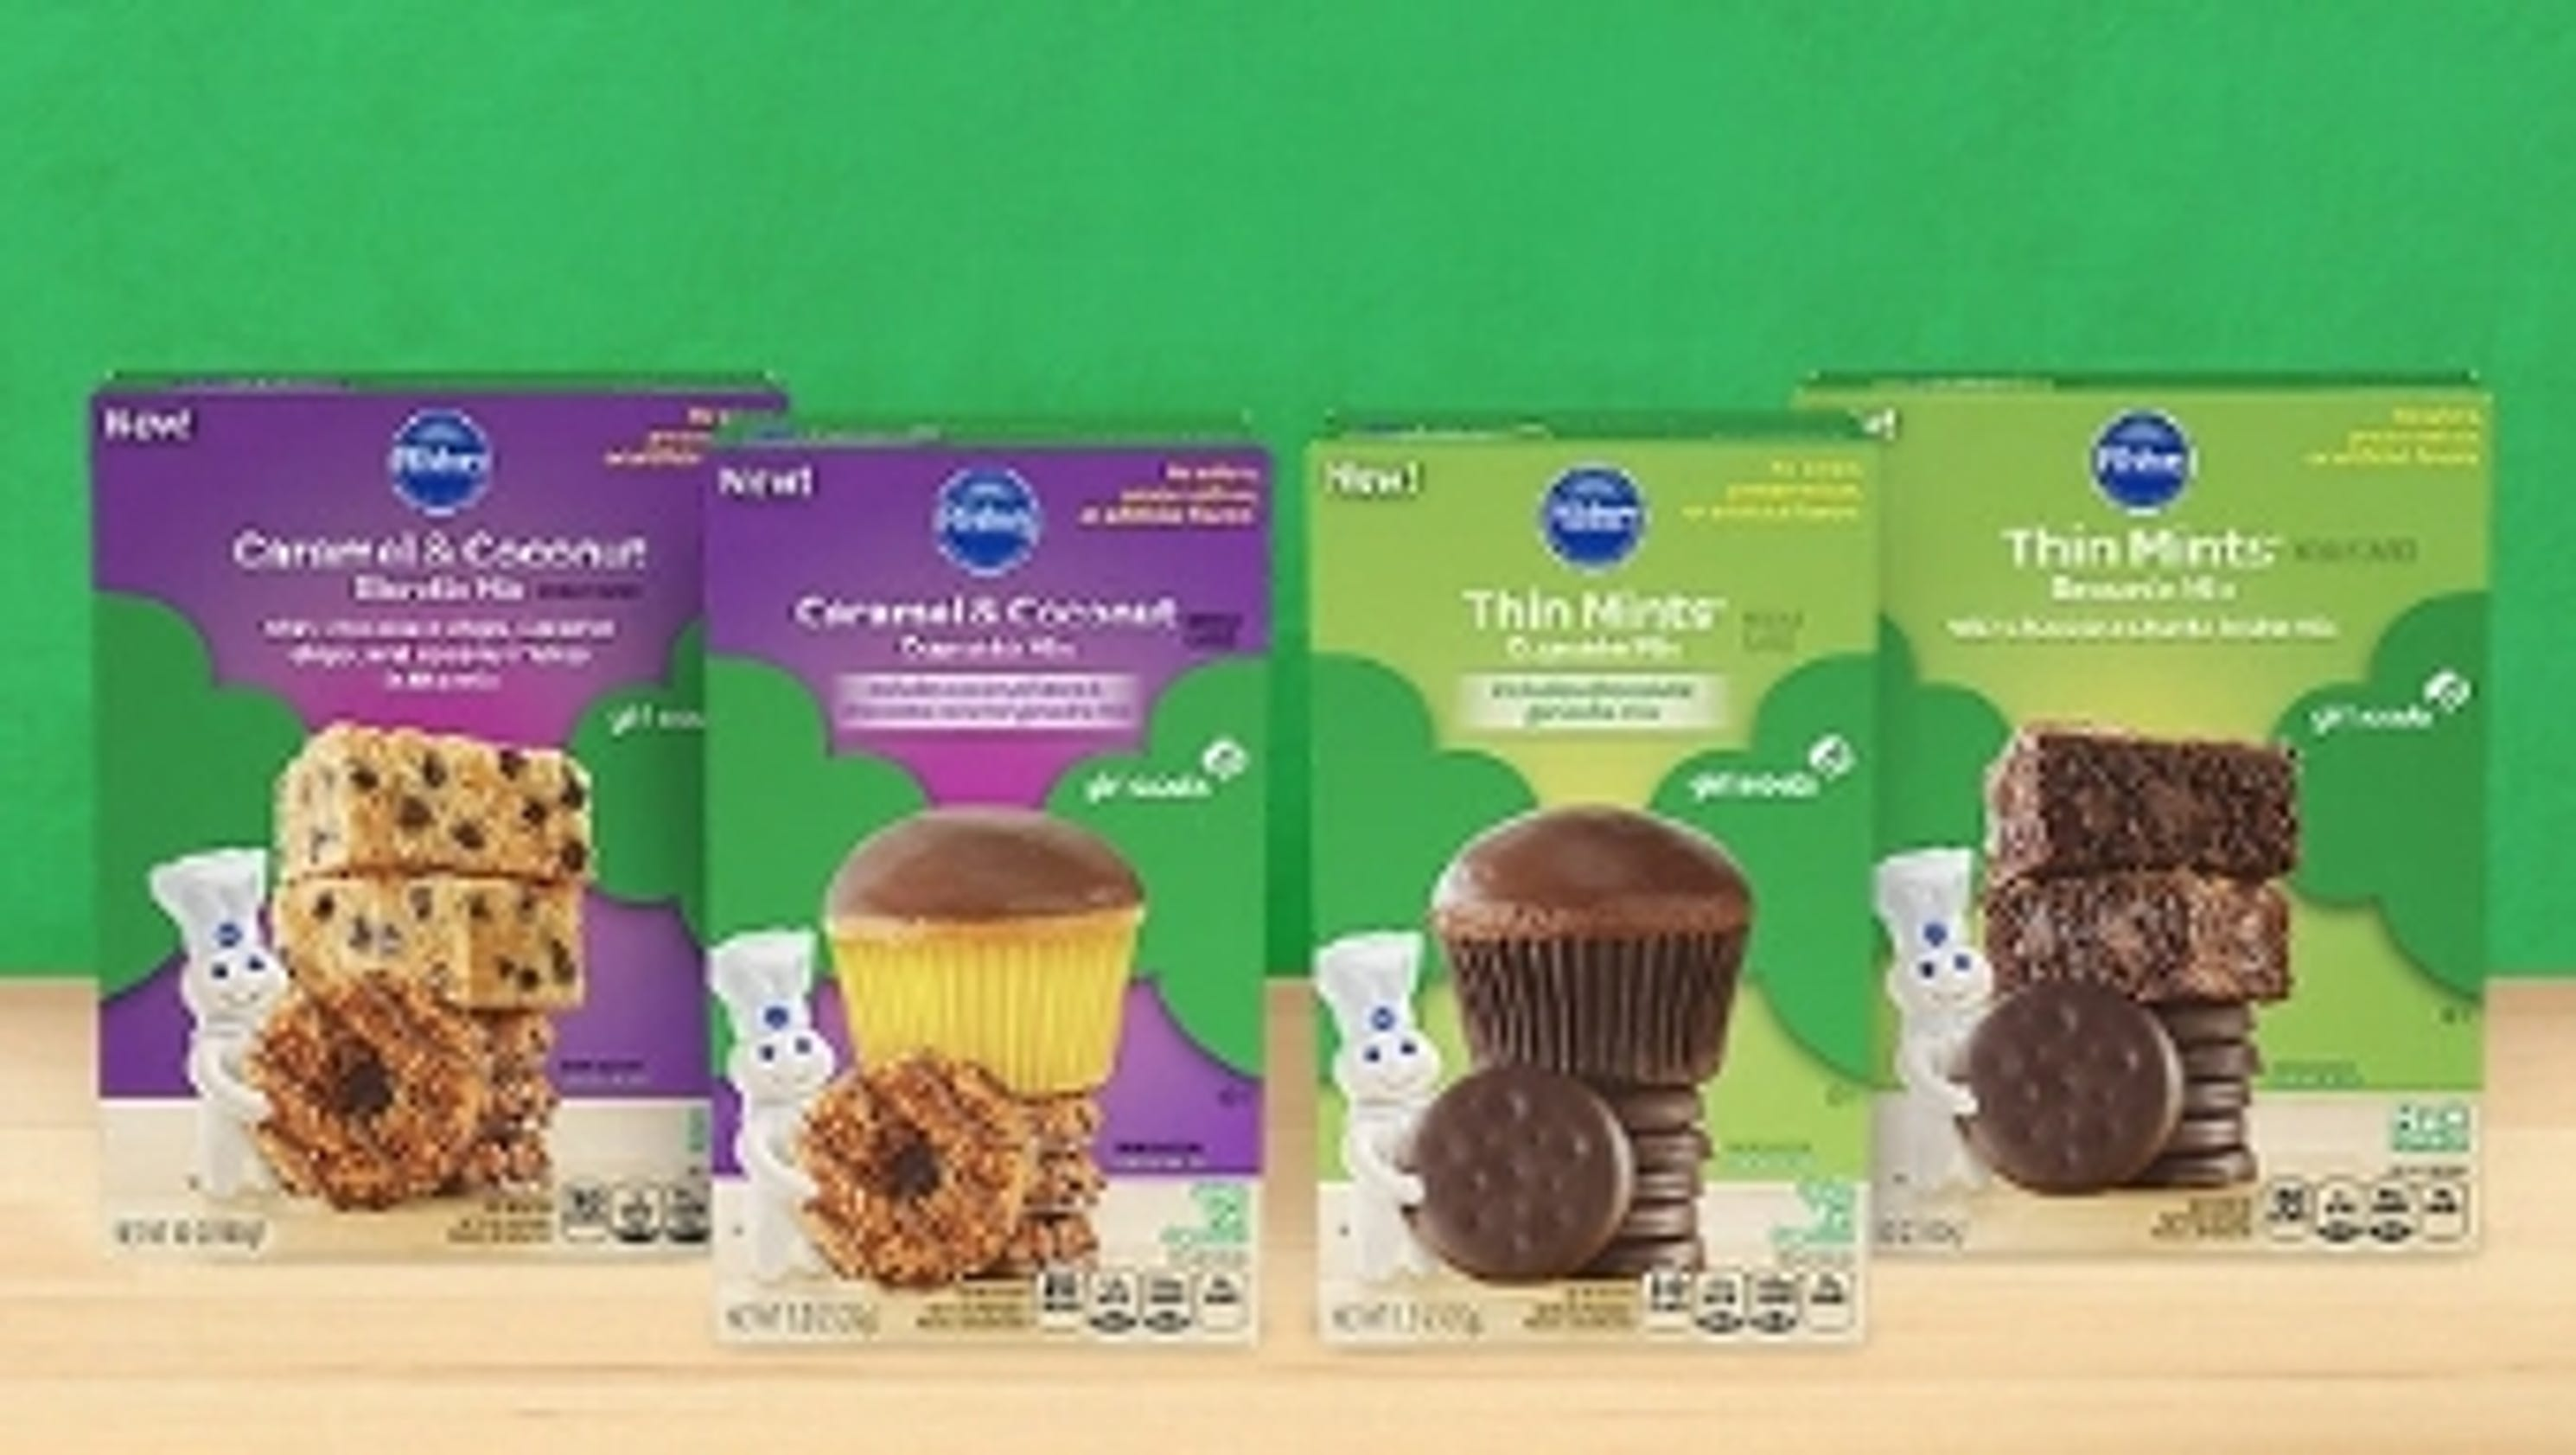 now you can bake your own girl scout cookies